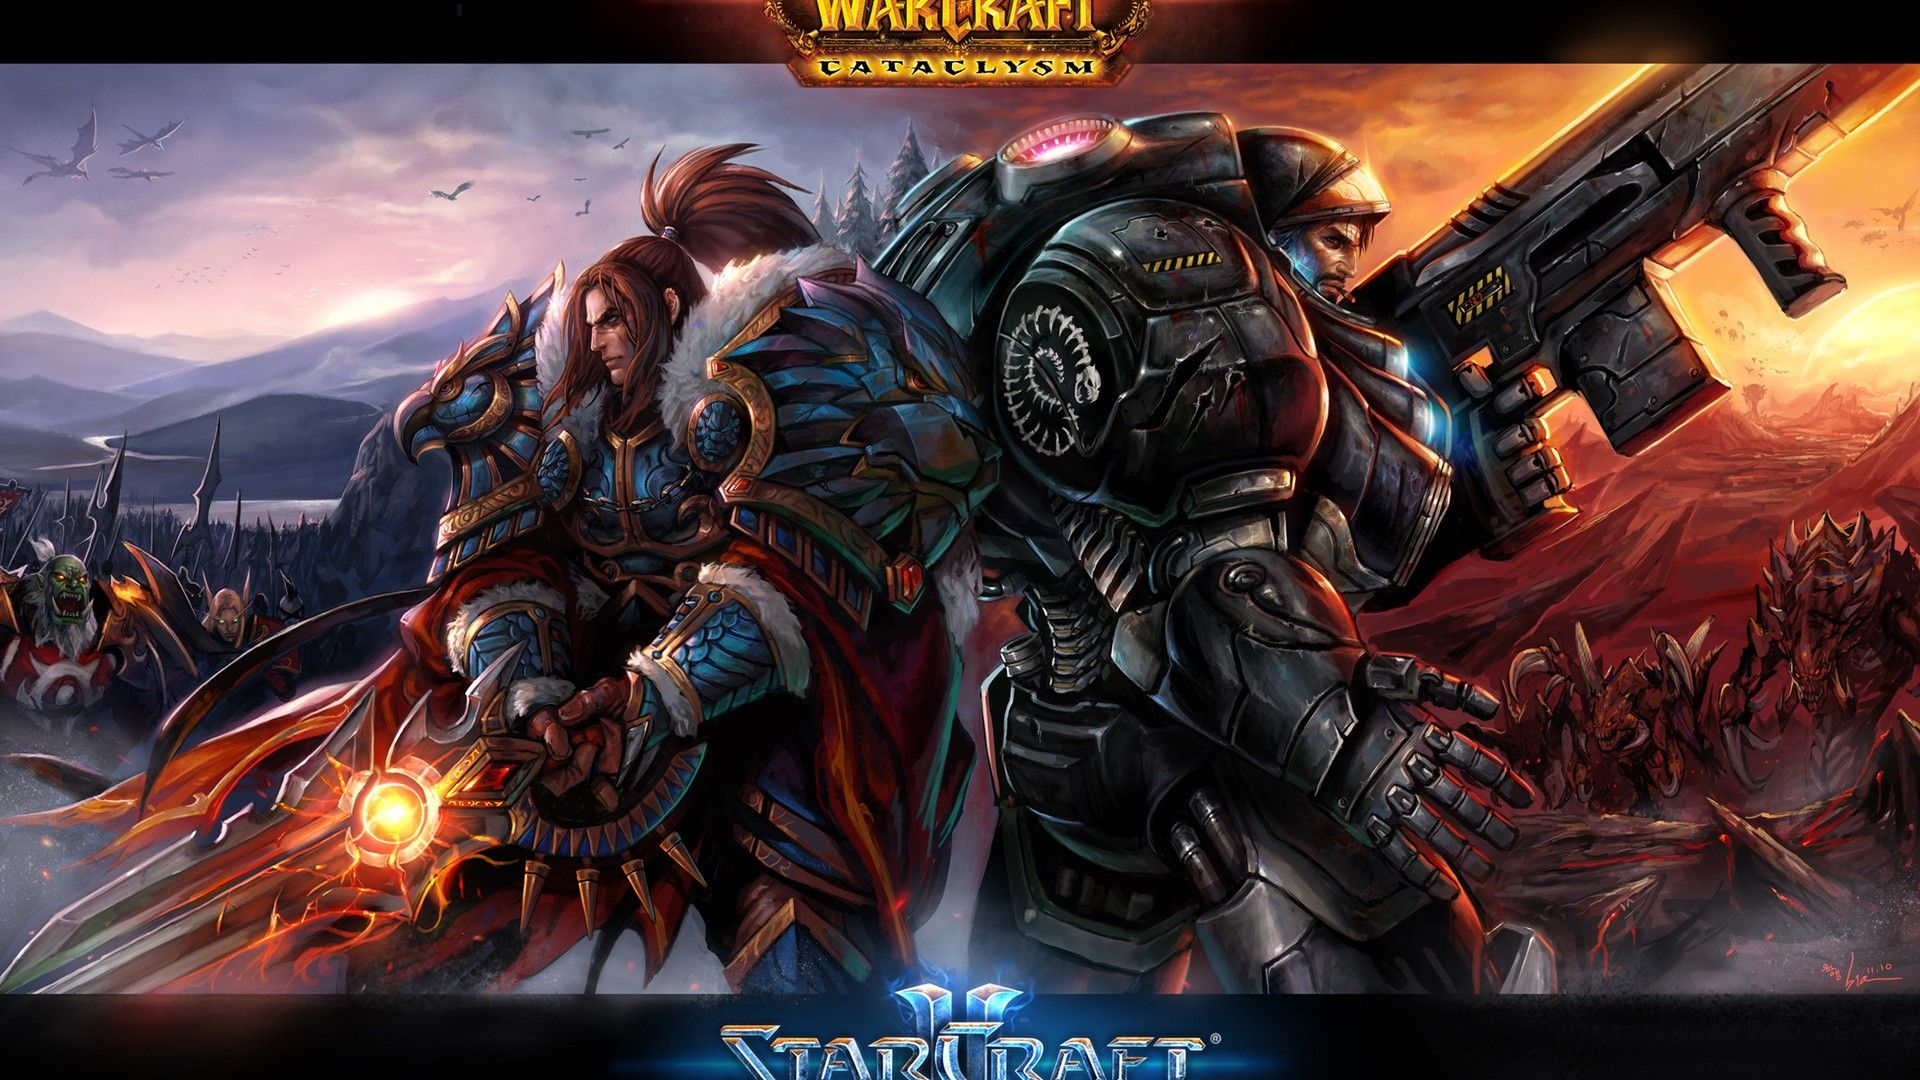 World of WarCraft WoW Orc Warrior Games Fantasy wallpaper